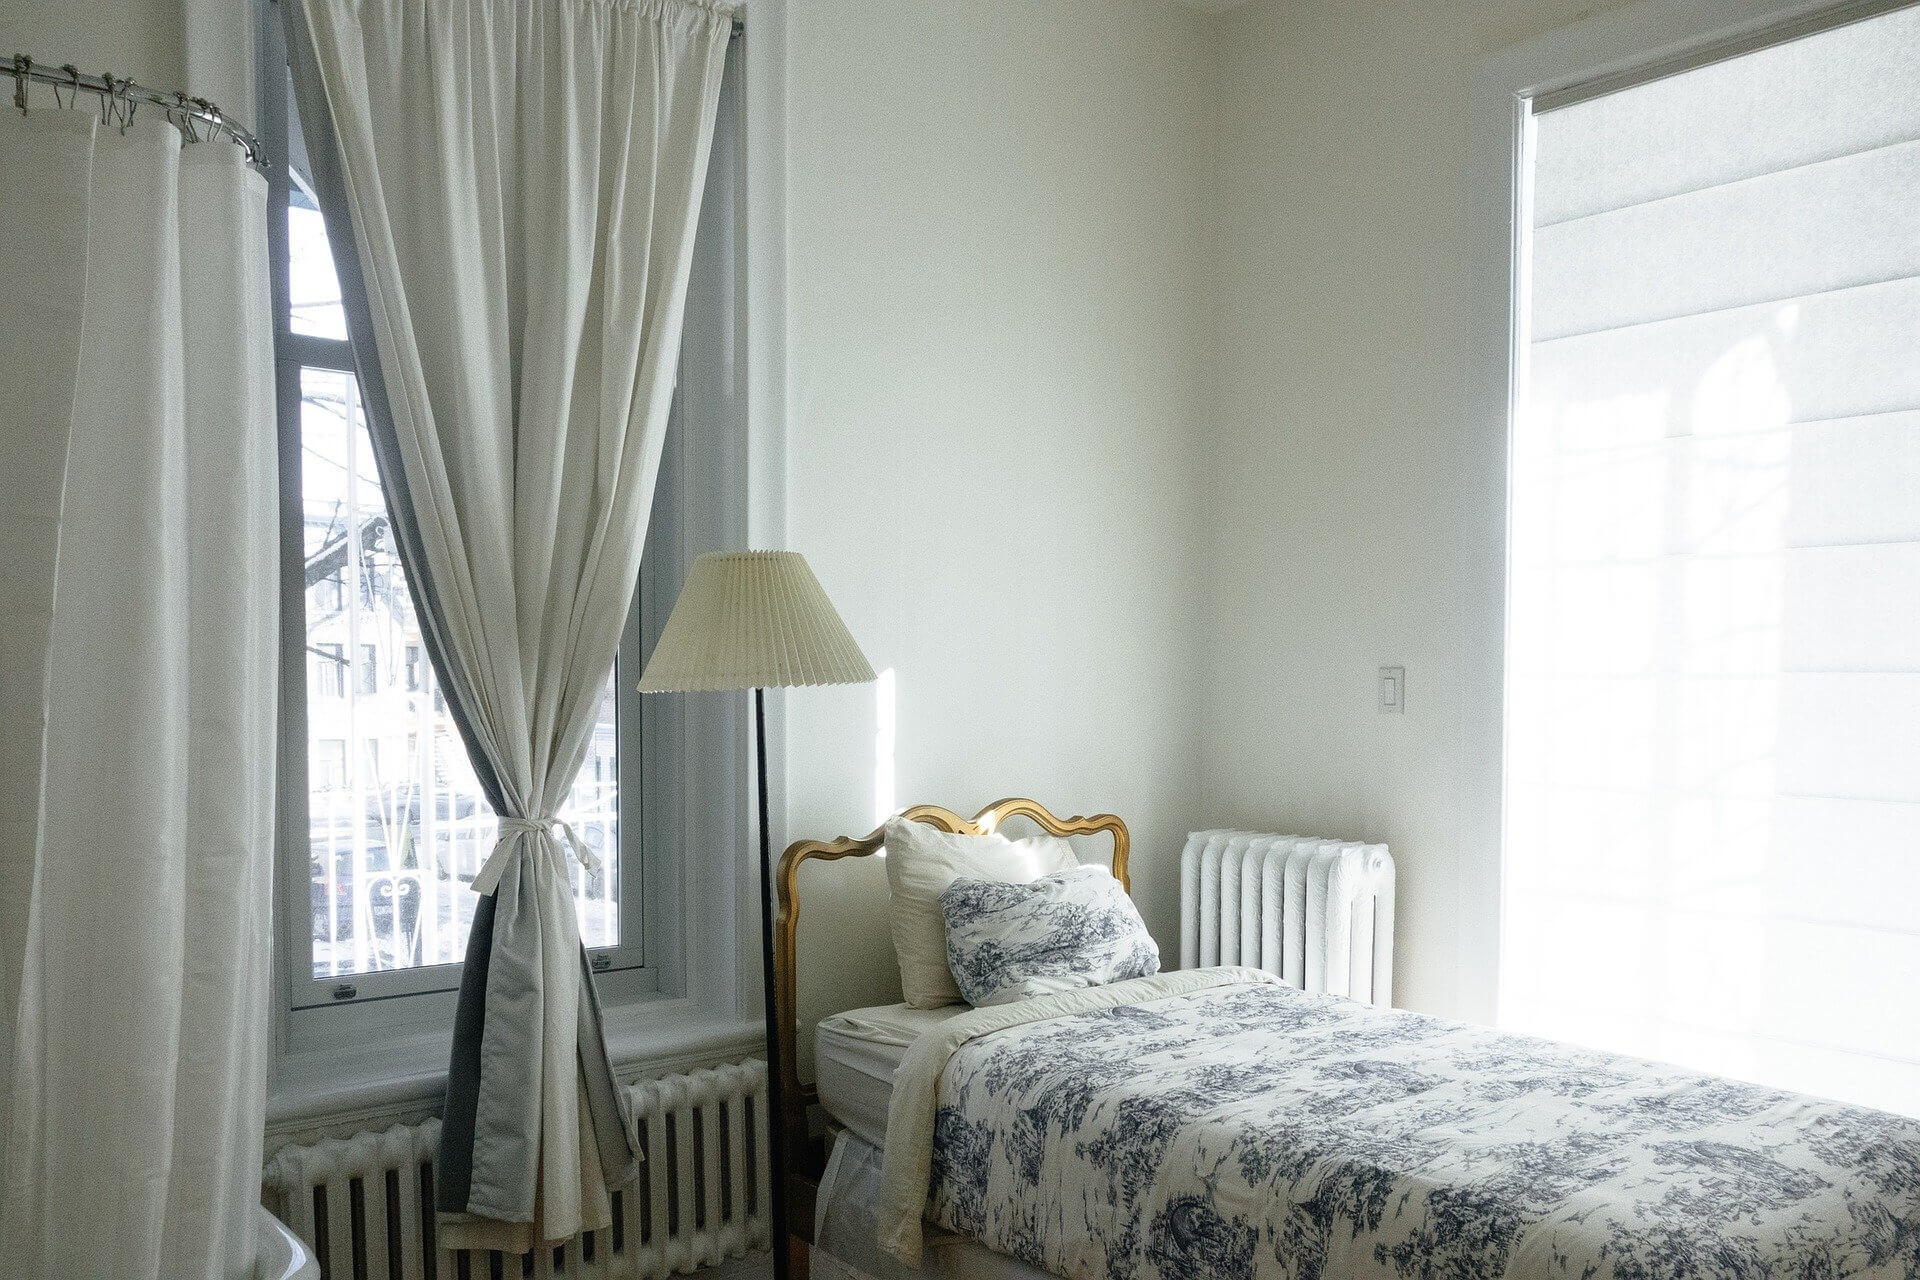 home diy projects canvas etc curtains